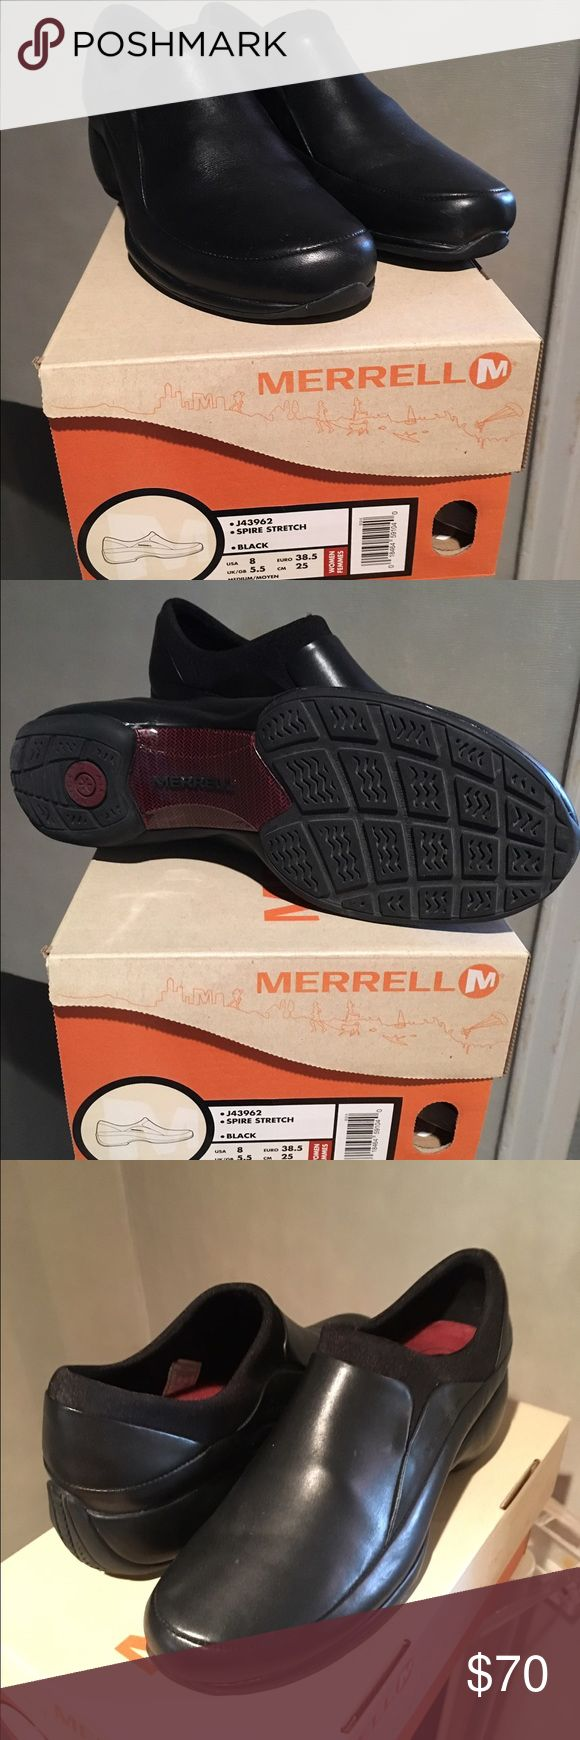 Merrill Spire Stretch Black Women's 8M EUC Waterproof leather/neoprene upper & rubber traction sole, extremely gently worn.  Merrell Shoes Flats & Loafers